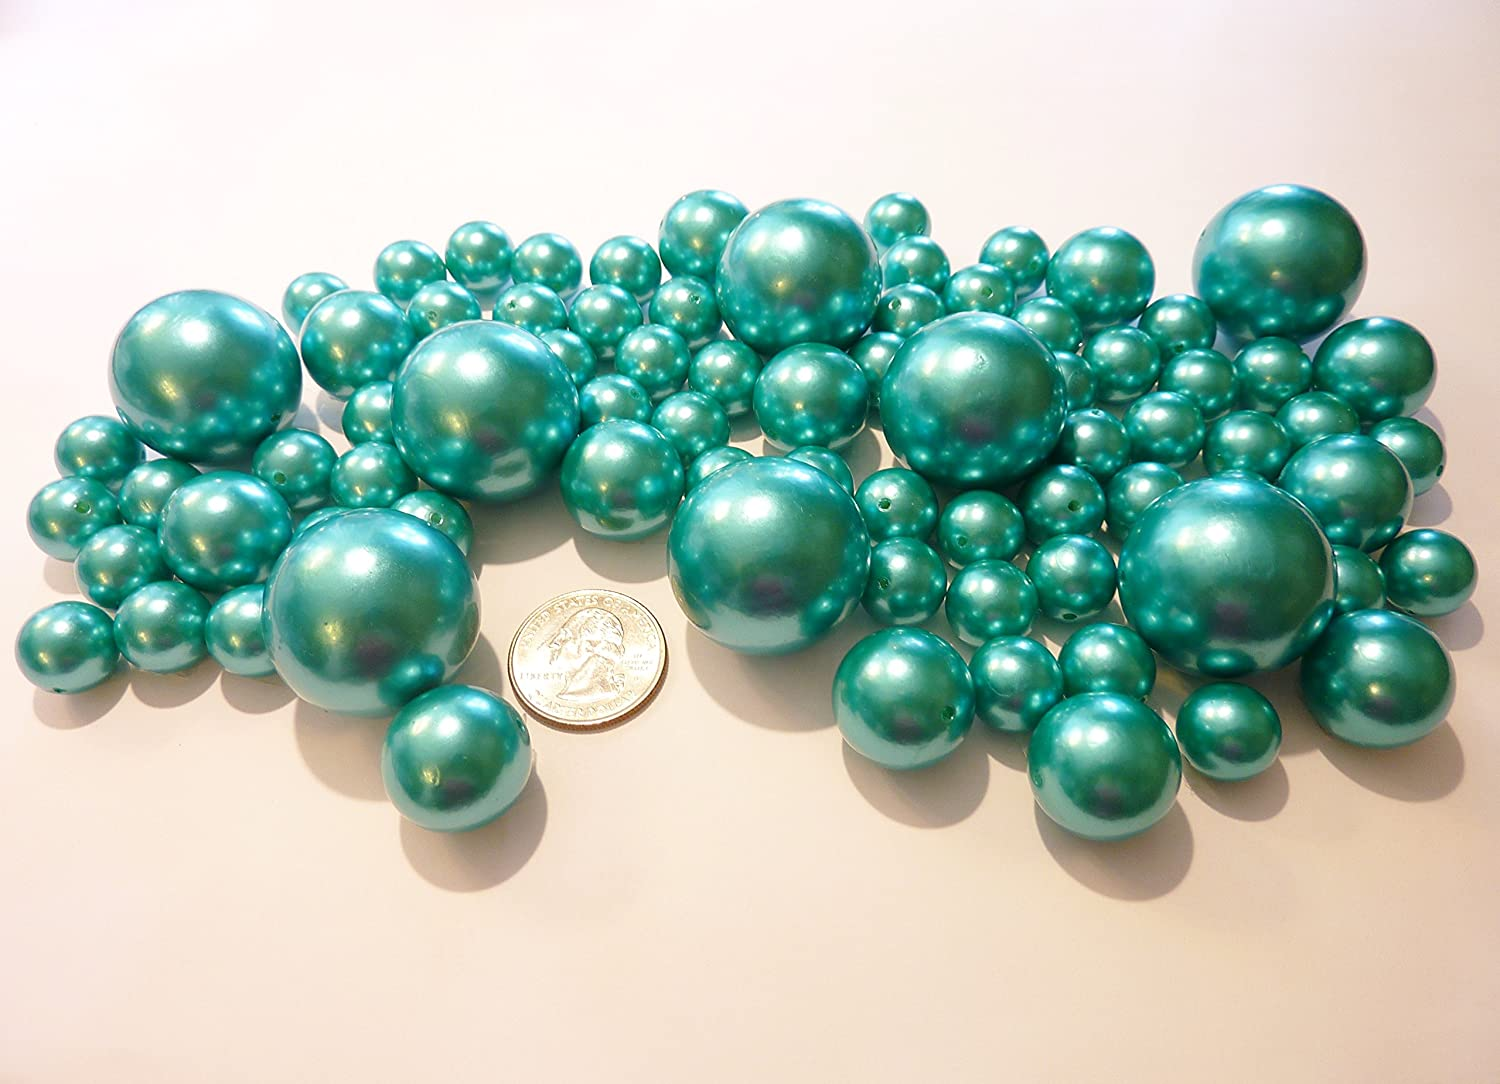 Amazon 80 jumbo assorted all turquoise blue pearlsteal amazon 80 jumbo assorted all turquoise blue pearlsteal blue pearls value pack vase fillers not including the transparent water gels for floating reviewsmspy